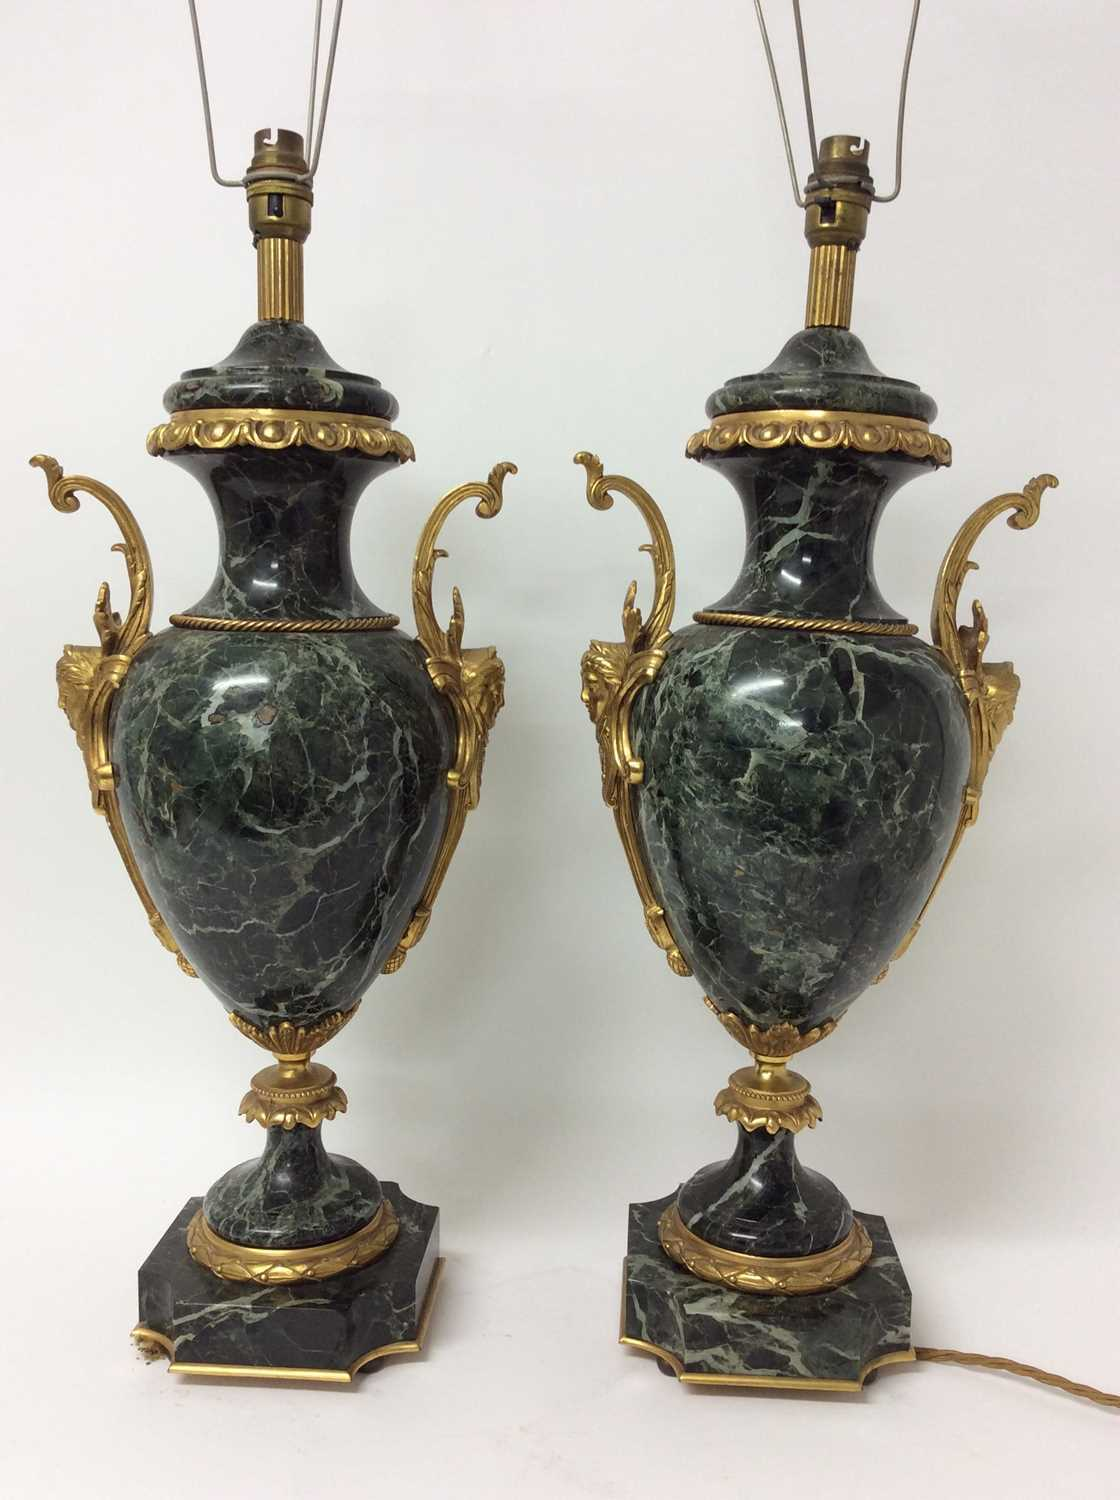 Pair of 18th century style gilt metal mounted verde antico marble table lamps, each of urn form with